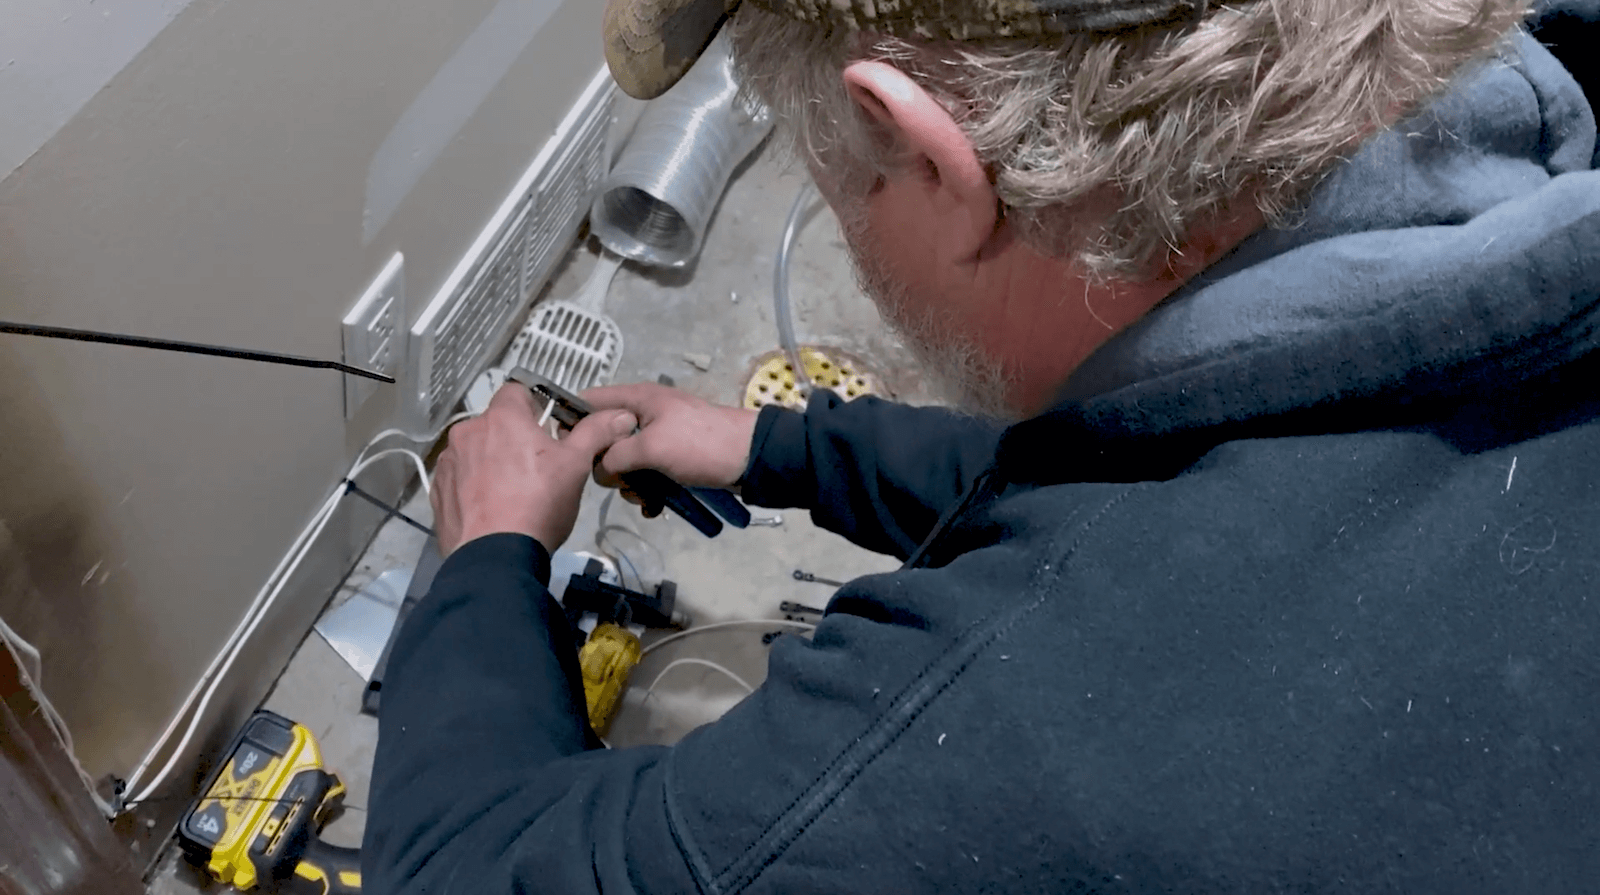 The Ultimate 2021 Hvac Tools List For Every Hvac Tech Housecall Pro